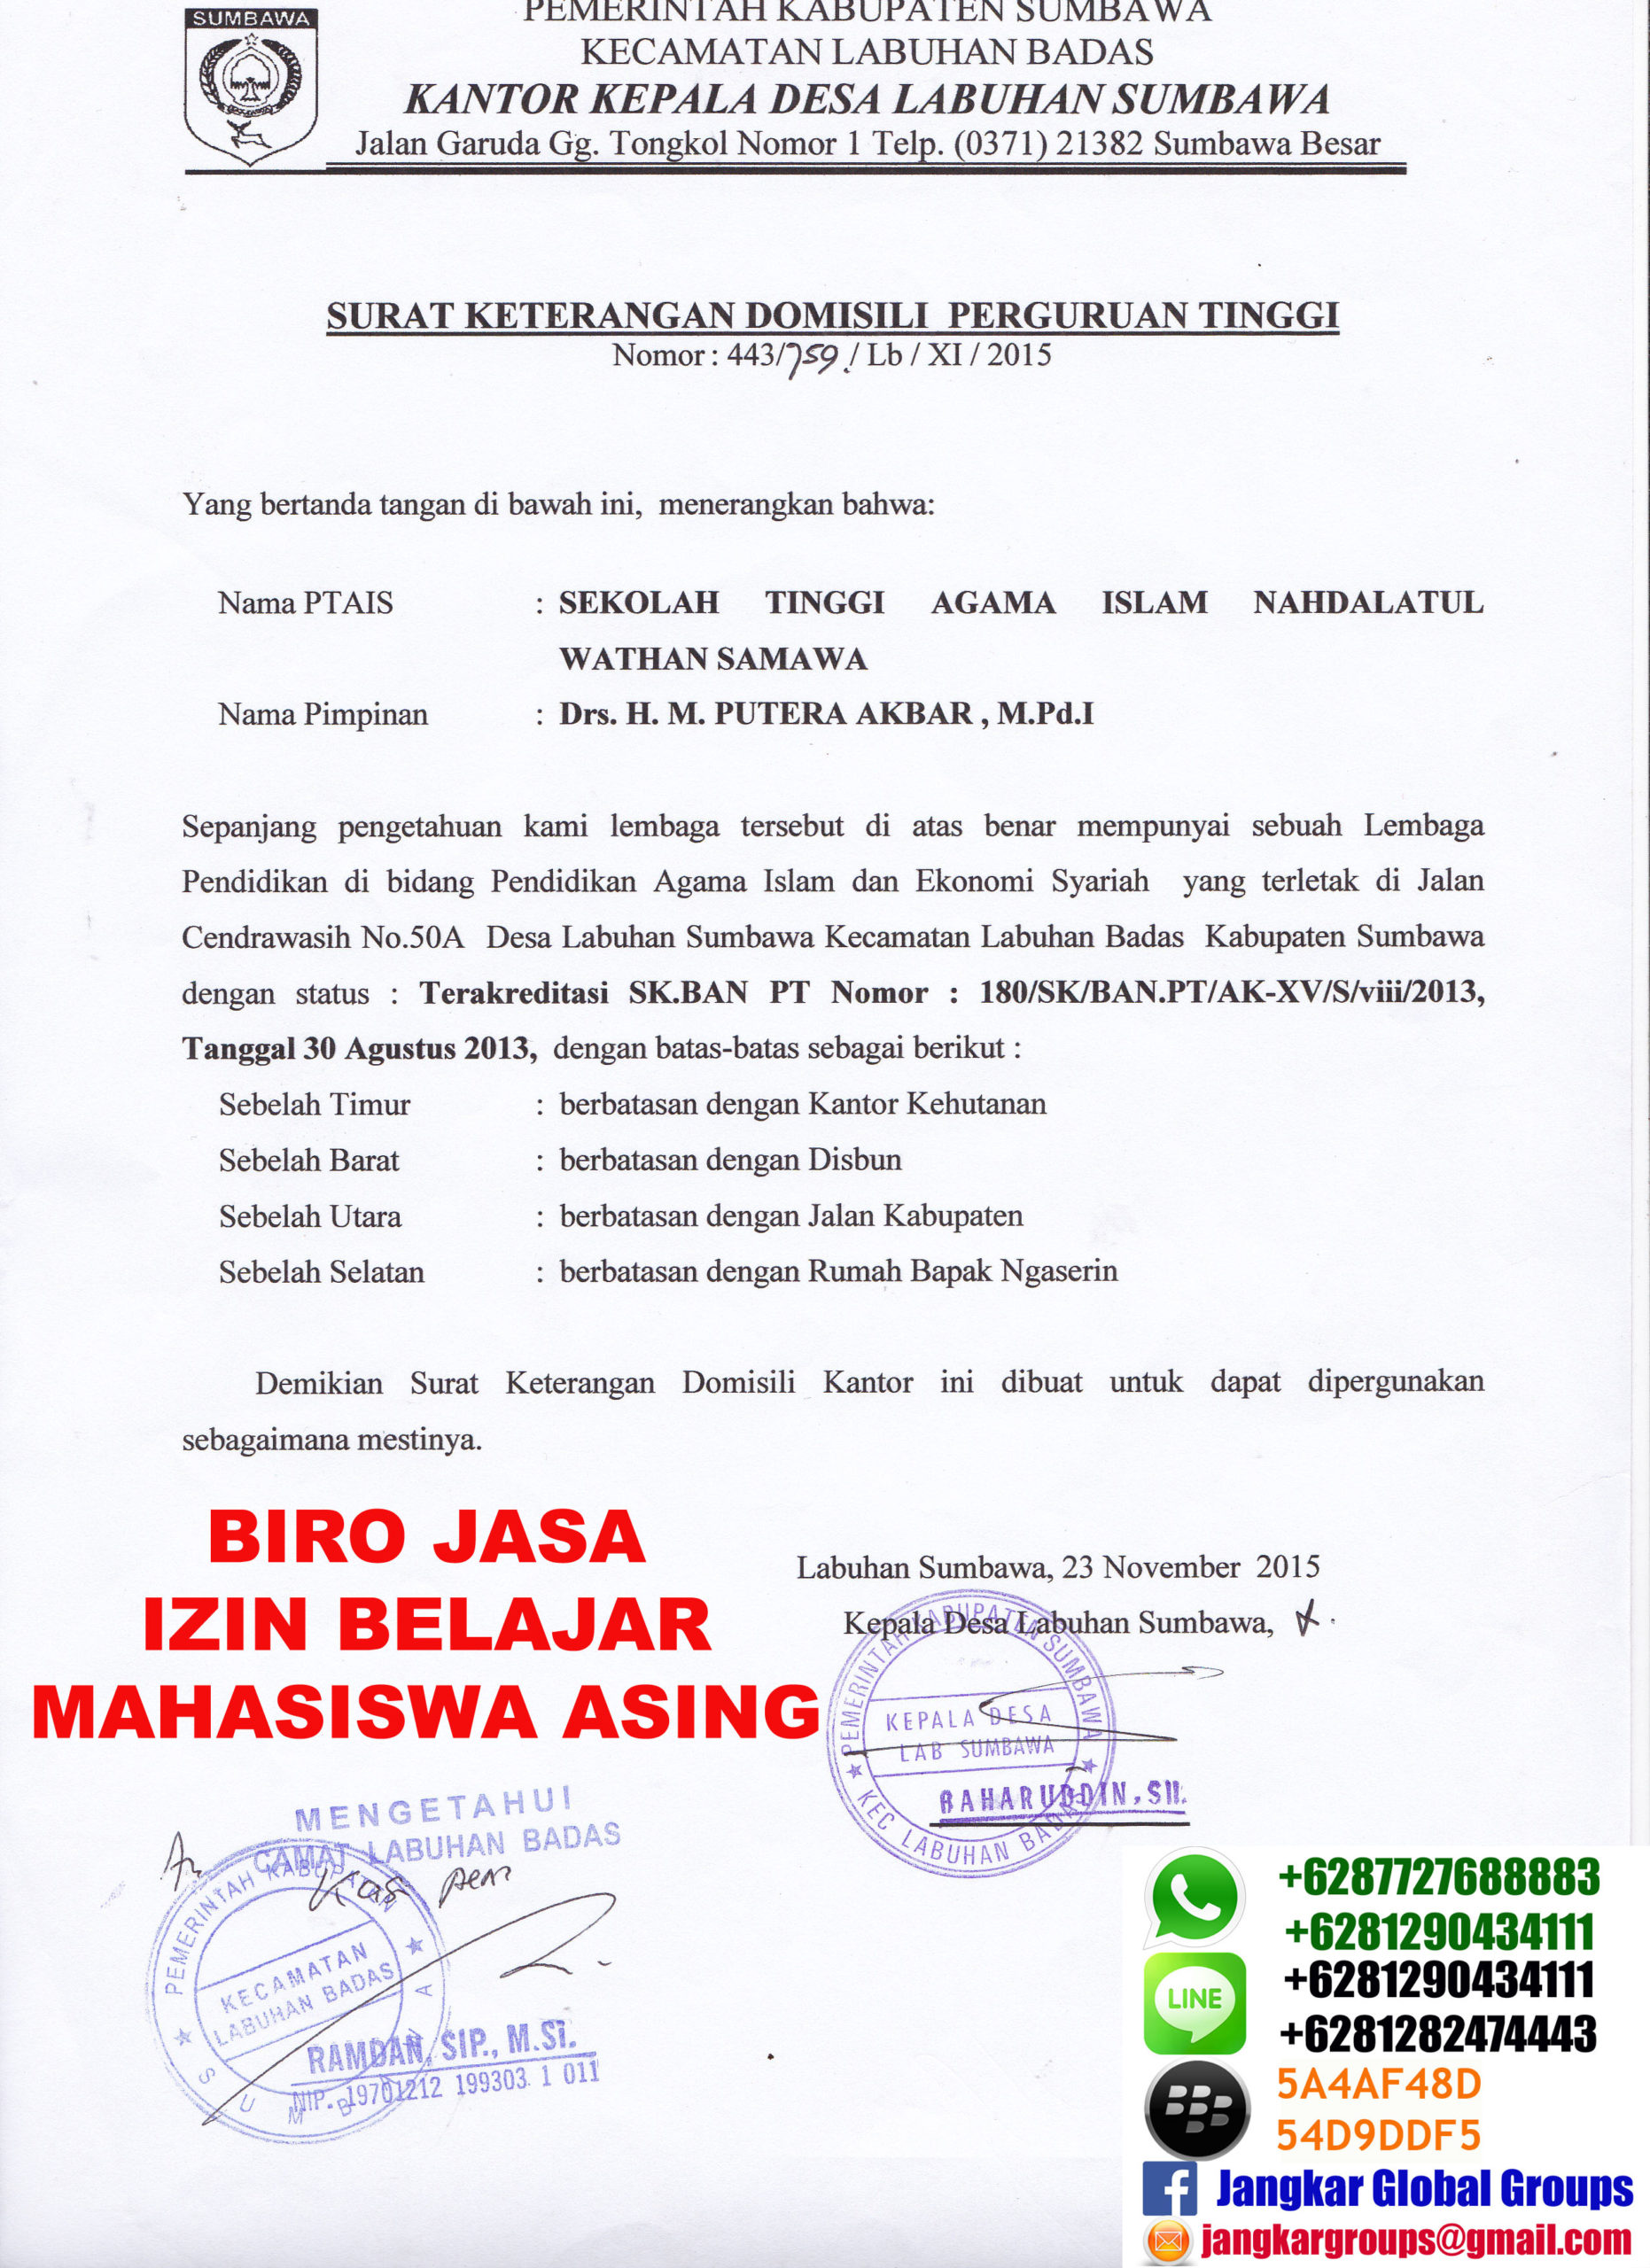 Surat Keterangan Domisili Kampus Jangkar Global Groups